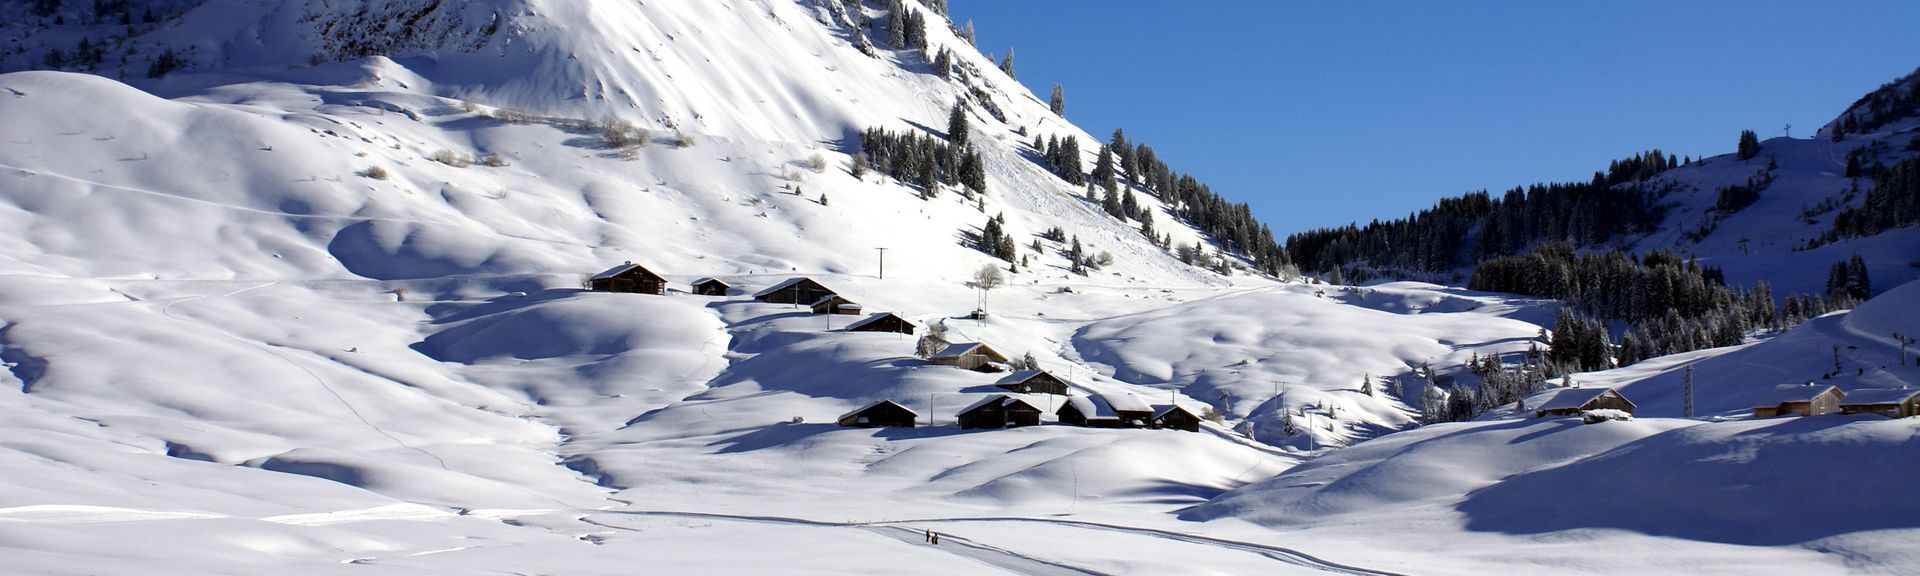 Le Praz de Lys, Taninges, Haute-Savoie (department), France